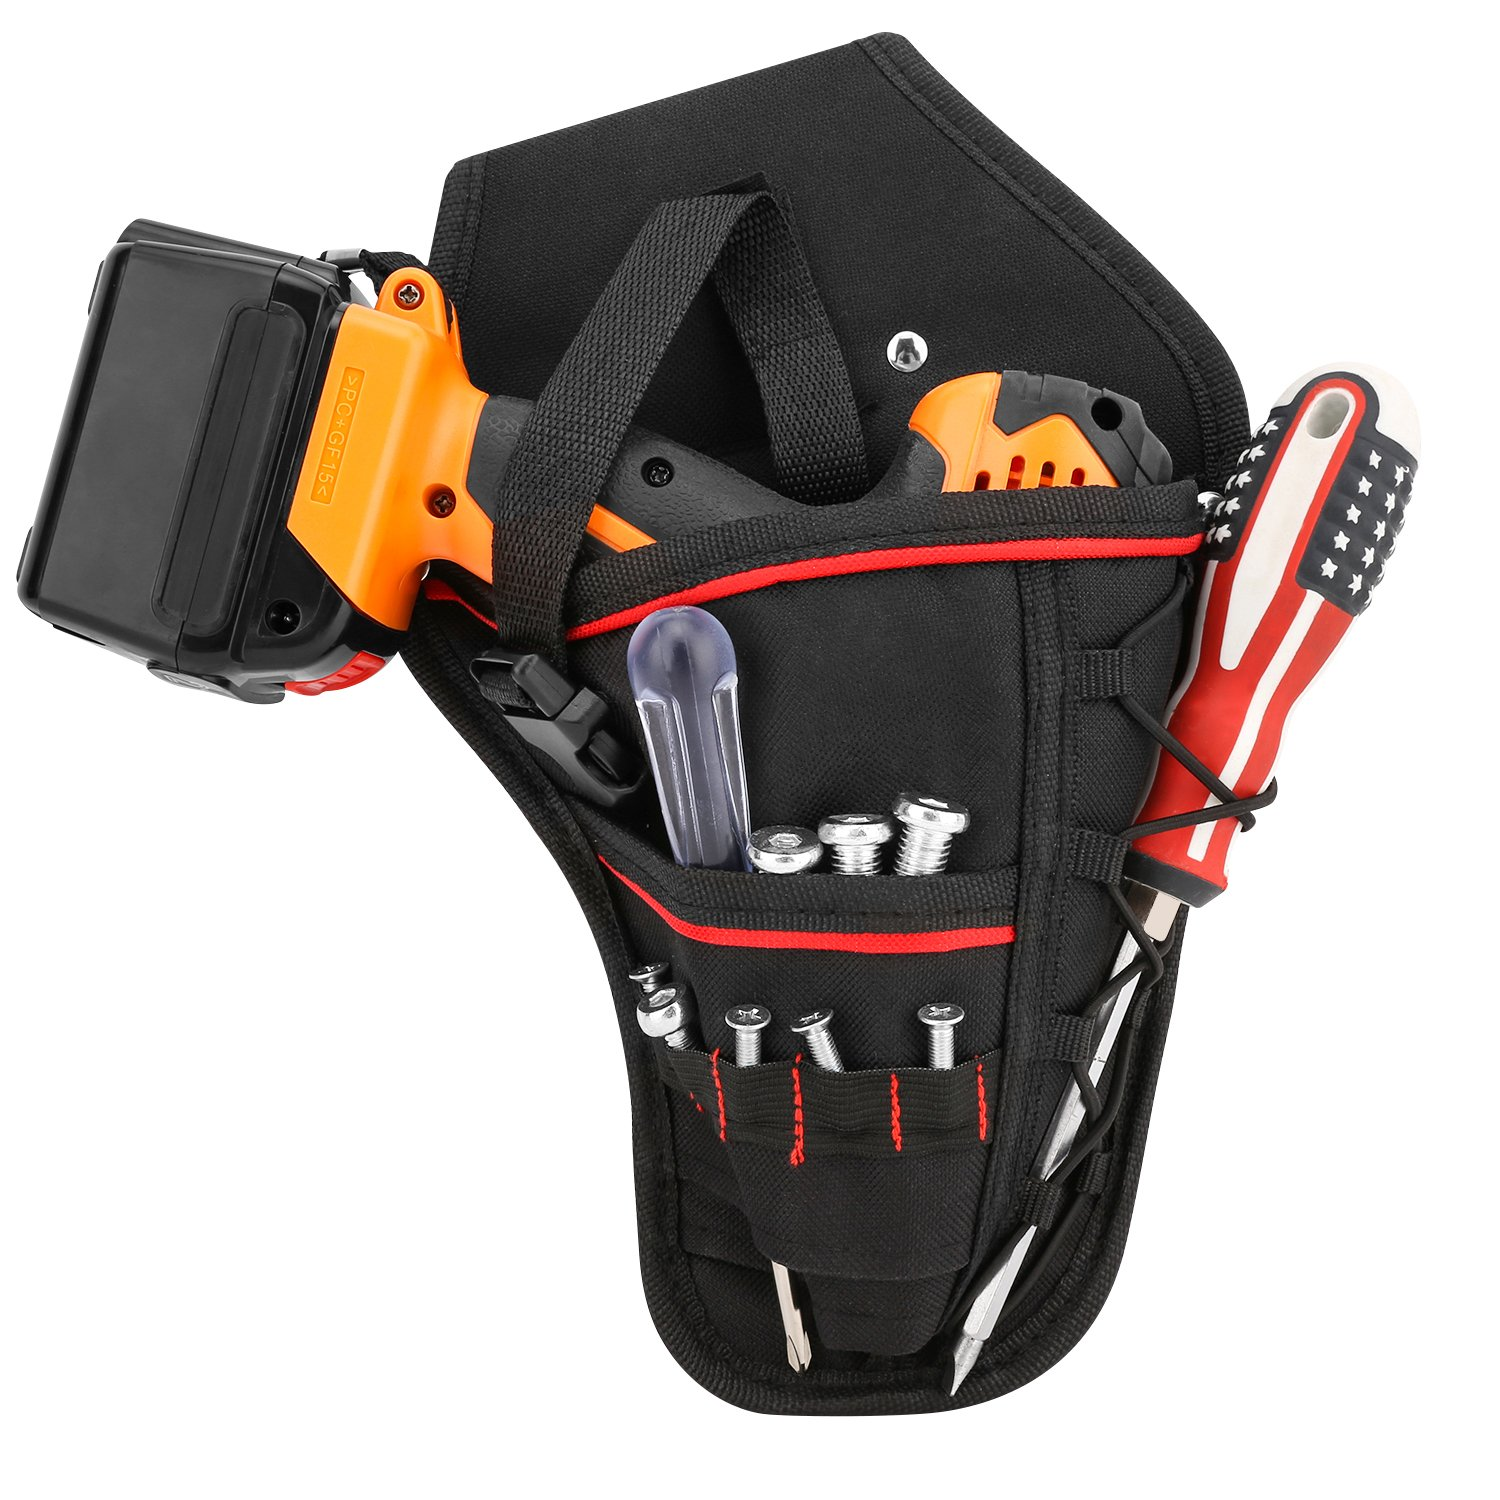 Drill Holster, Housolution Waterproof Impact Driver Drill Holder, Multi-functional Electric Tool Pouch Bag with Waist Belt for Wrench, Hammer, Screwdriver, Fits Most T Handle Drills - Black